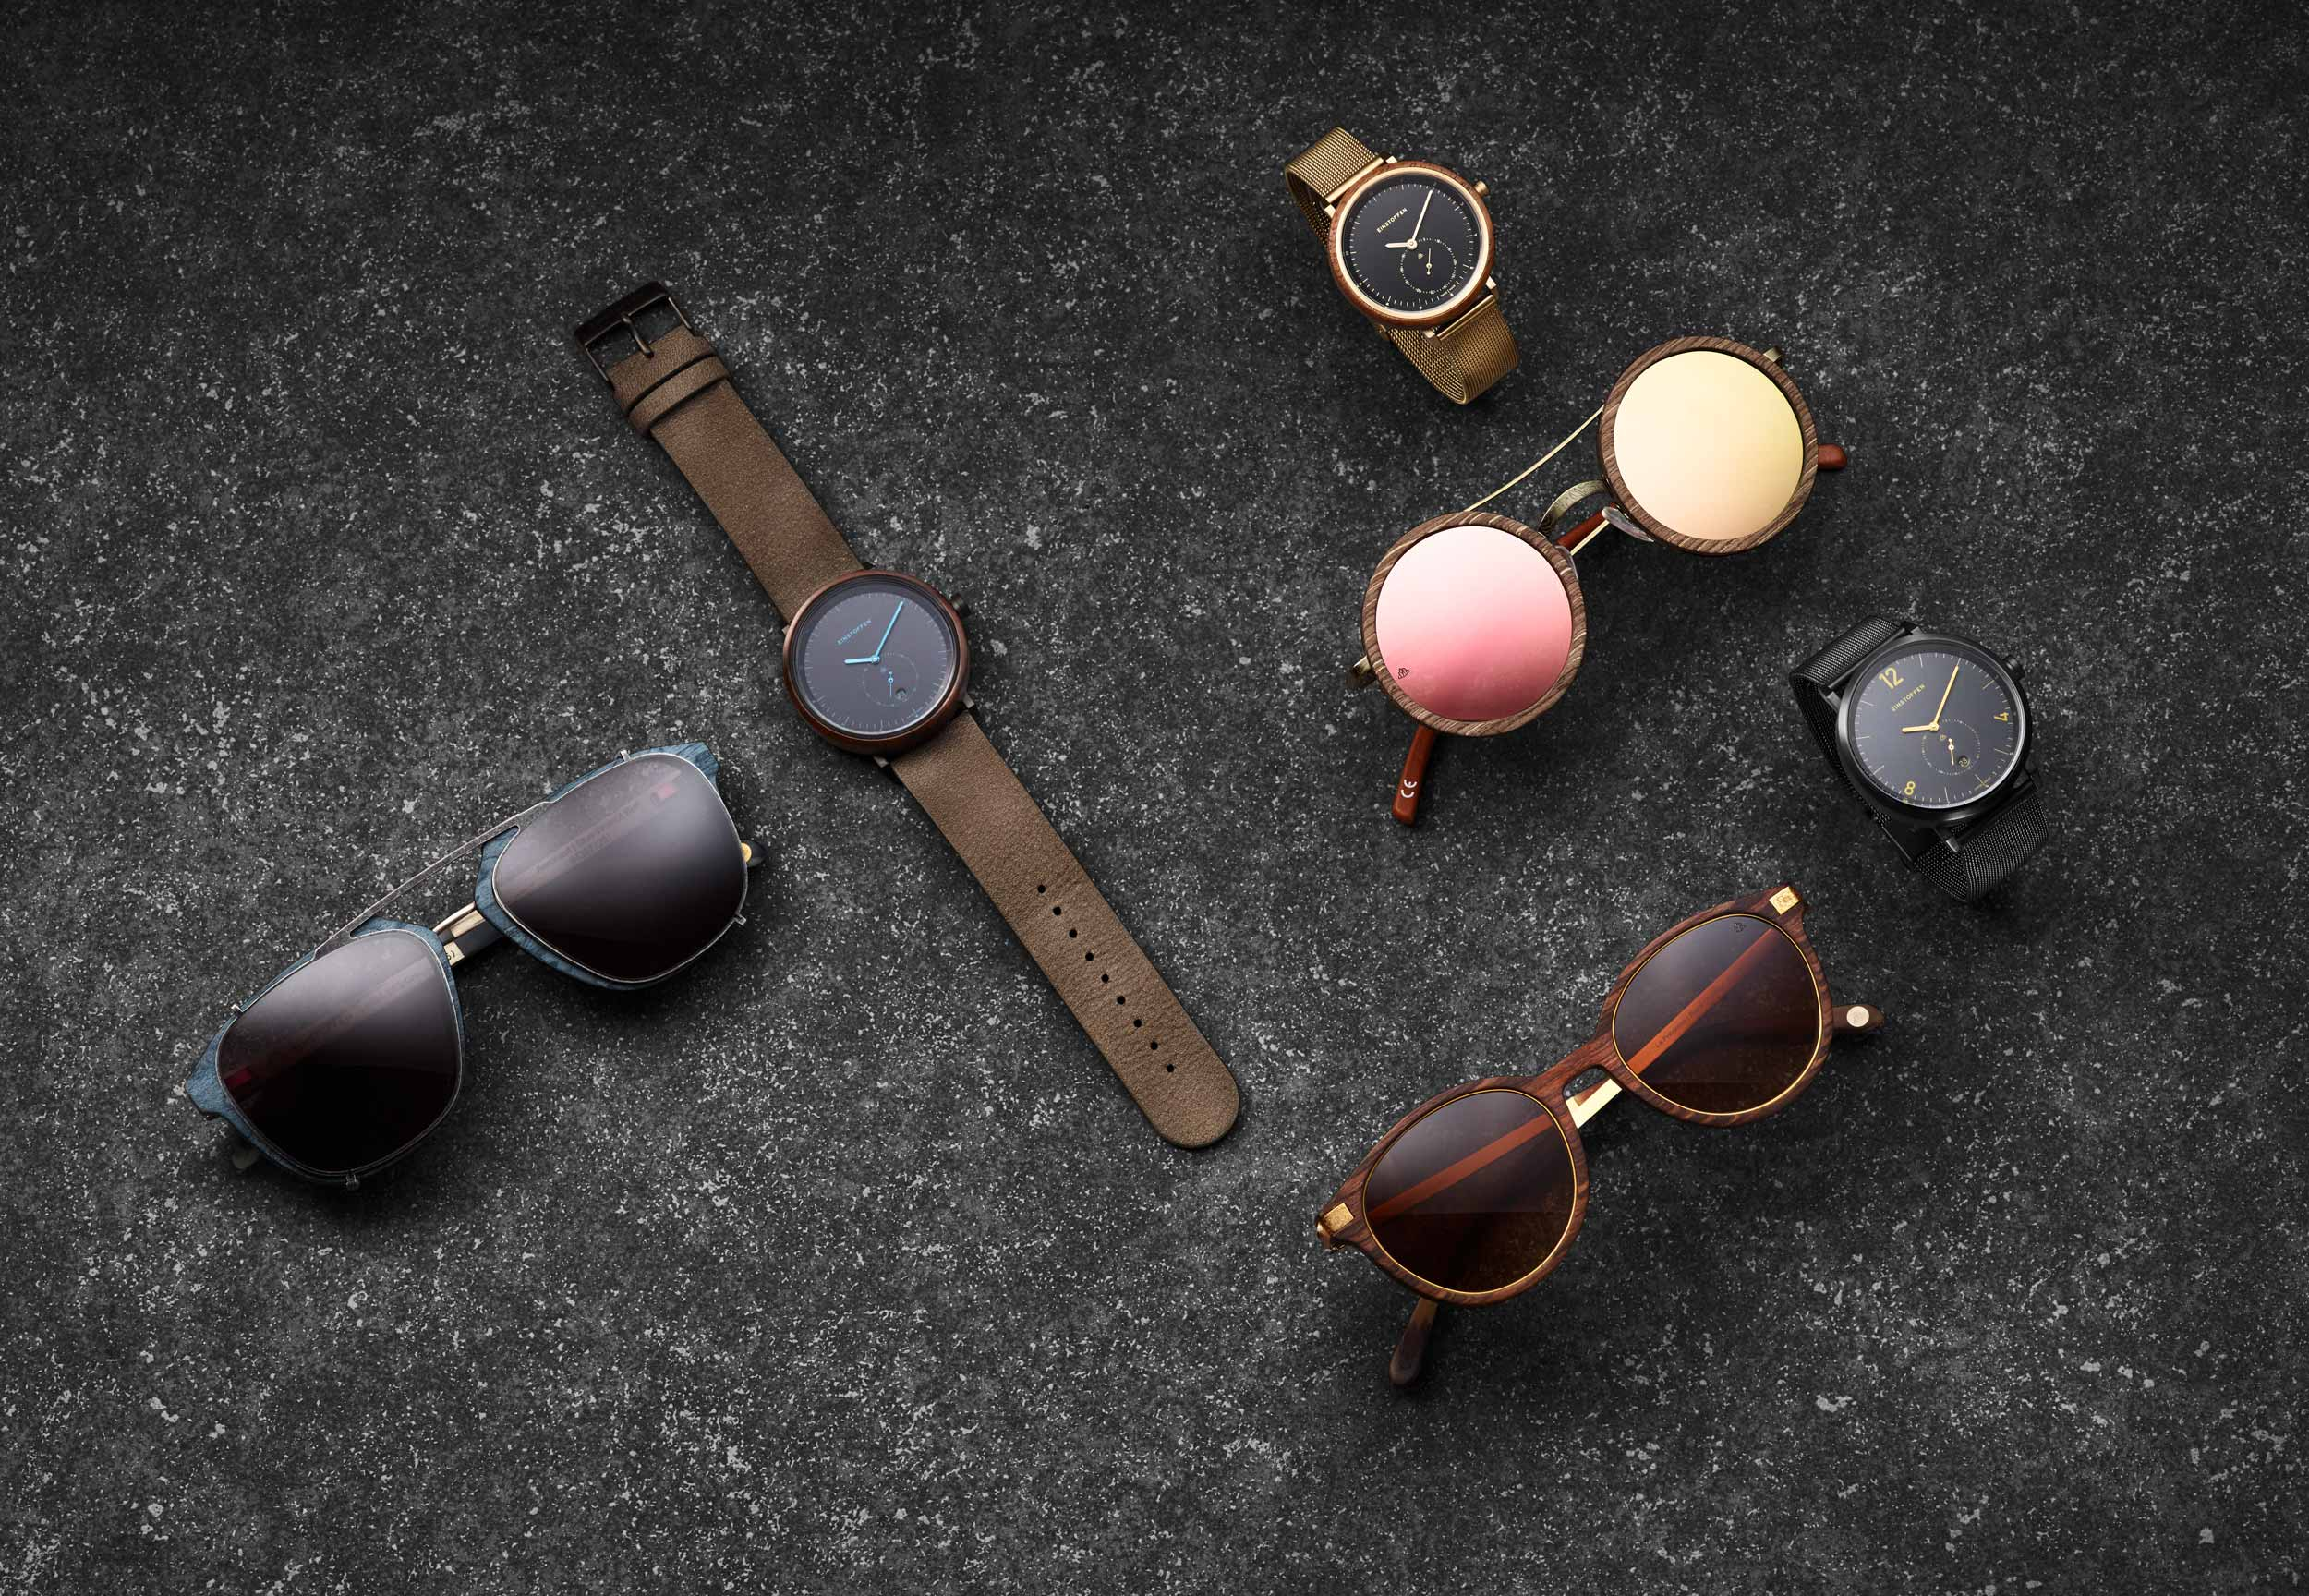 EINSTOFFEN – The Swiss Brand Launches New Collection of Watches